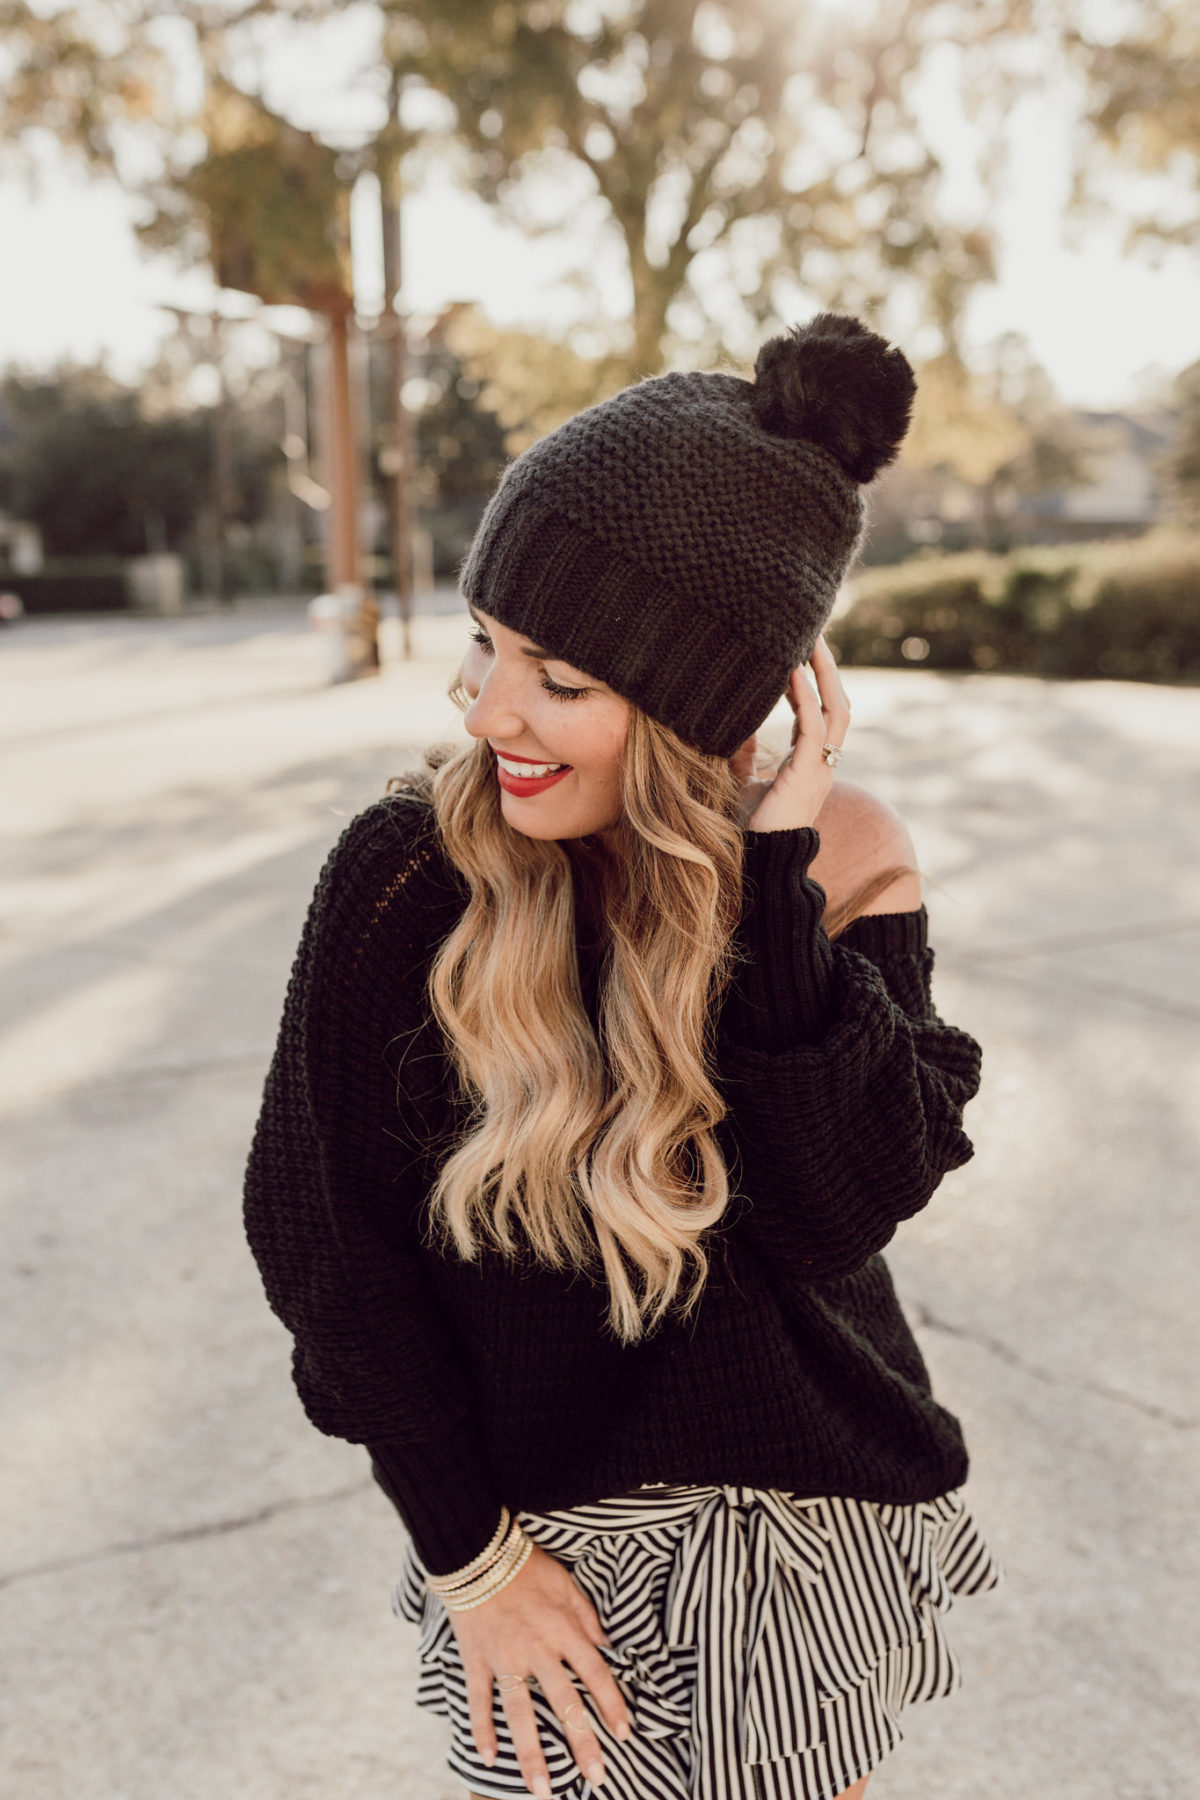 CHECK OUT MY LIBBY EDELMAN POM BEANIE THAT IS PART OF THE JACQUES PENNE CURATED COLLECTION WITH JCPENNEY